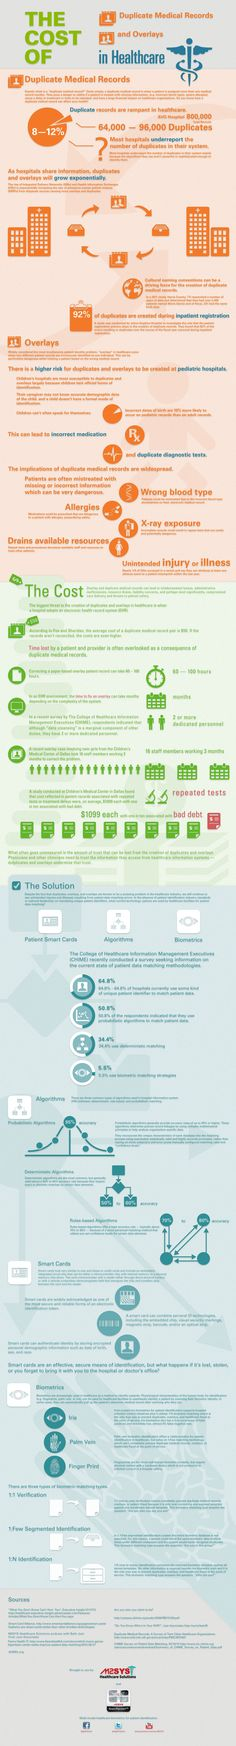 Infographic: The Impact of Duplicate Medical Records in Healthcare